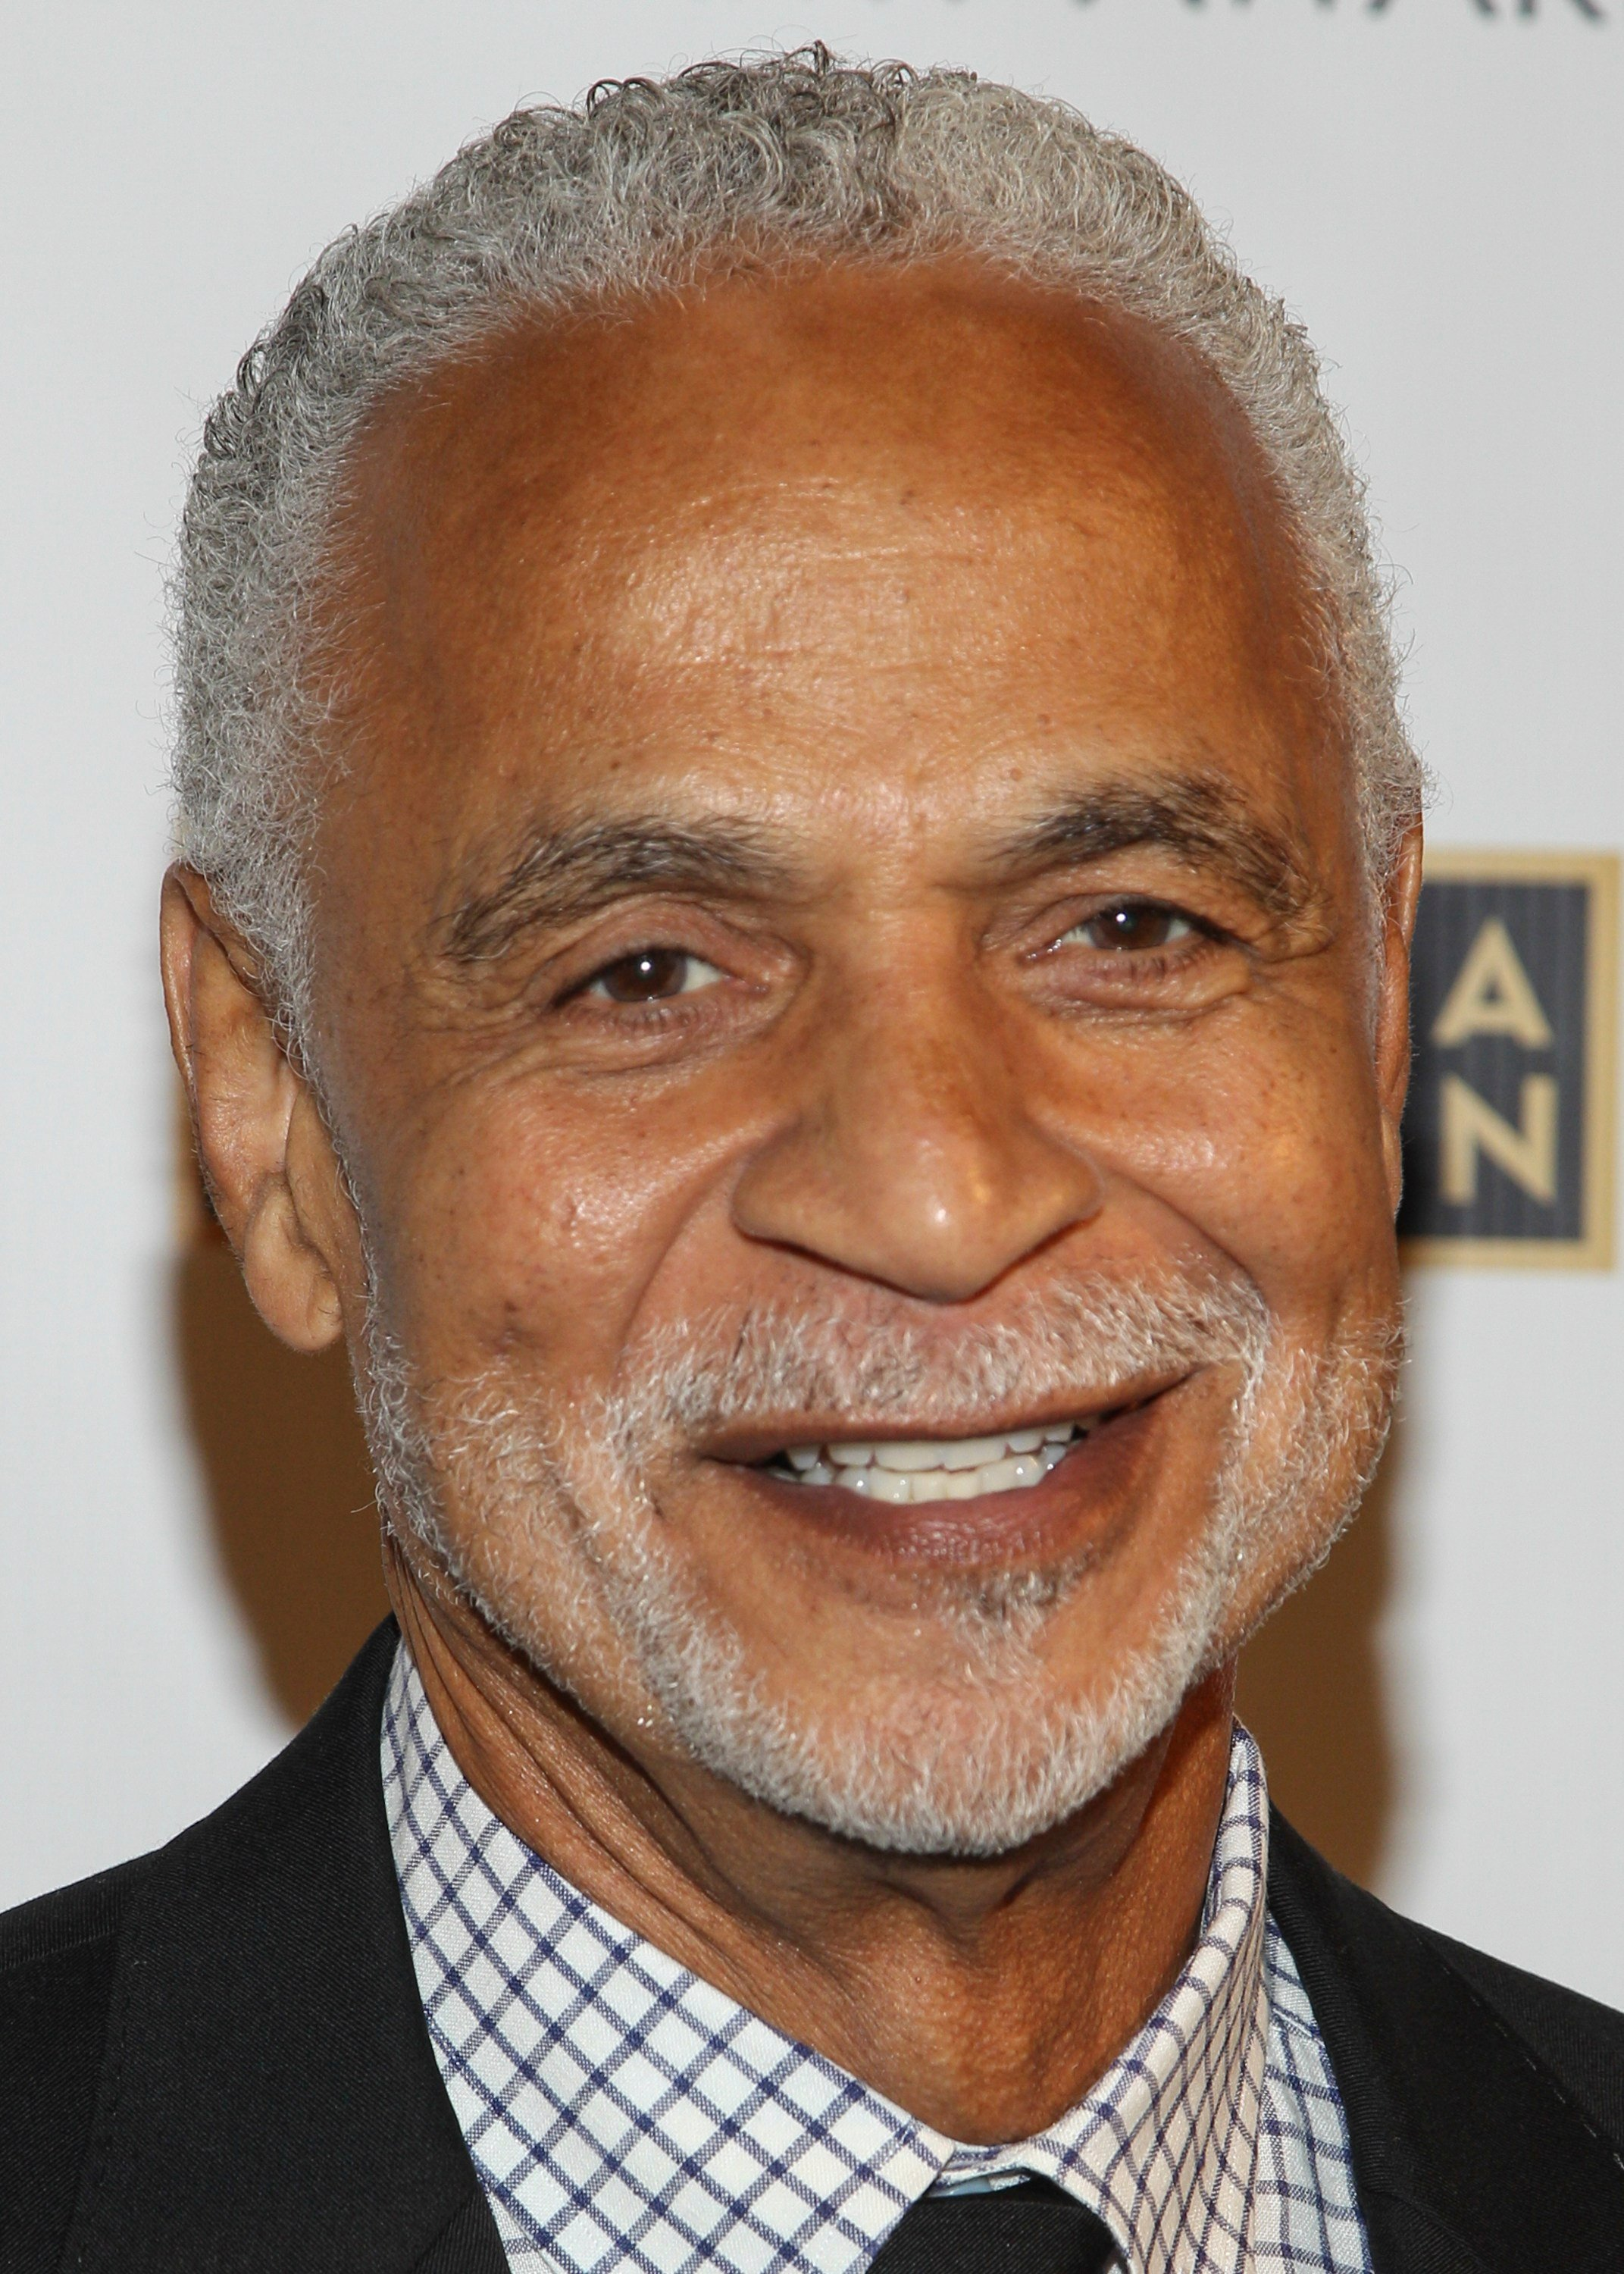 Sept. 17, 2013 file photo: Actor Ron Glass arrives at the 65th Emmy Awards Nomination Celebration at the Academy of Television Arts and Sciences in Los Angeles. (Photo by Paul A. Hebert/Invision/AP, File)